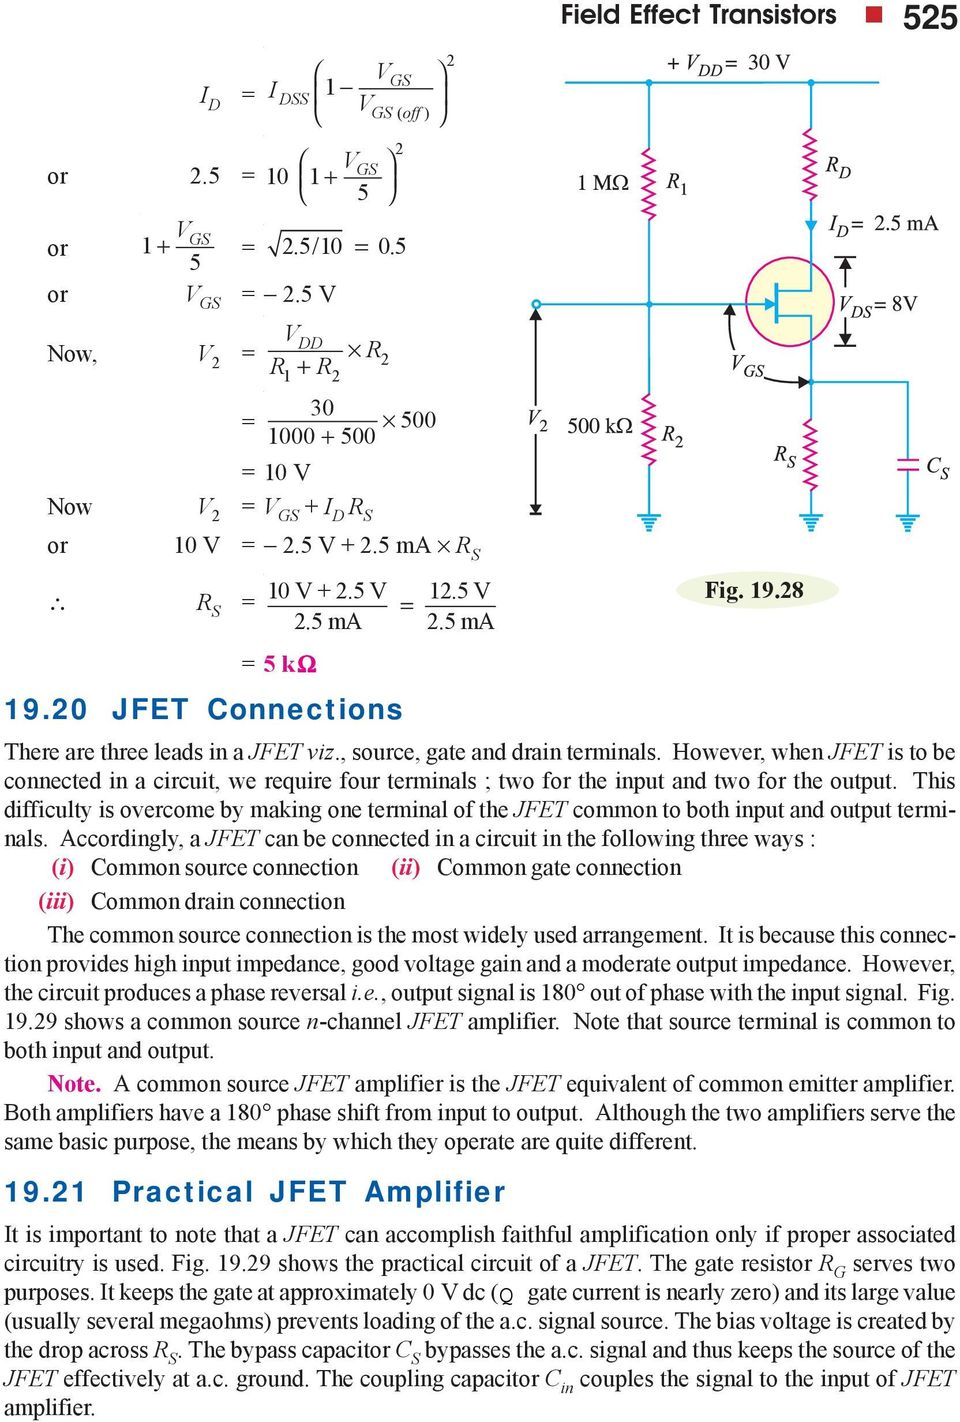 Field Effect Transistors Pdf Common Source Jfet Amplifier Circuit The Output This Difficulty Is Overcome By Making One Terminal Of To Both